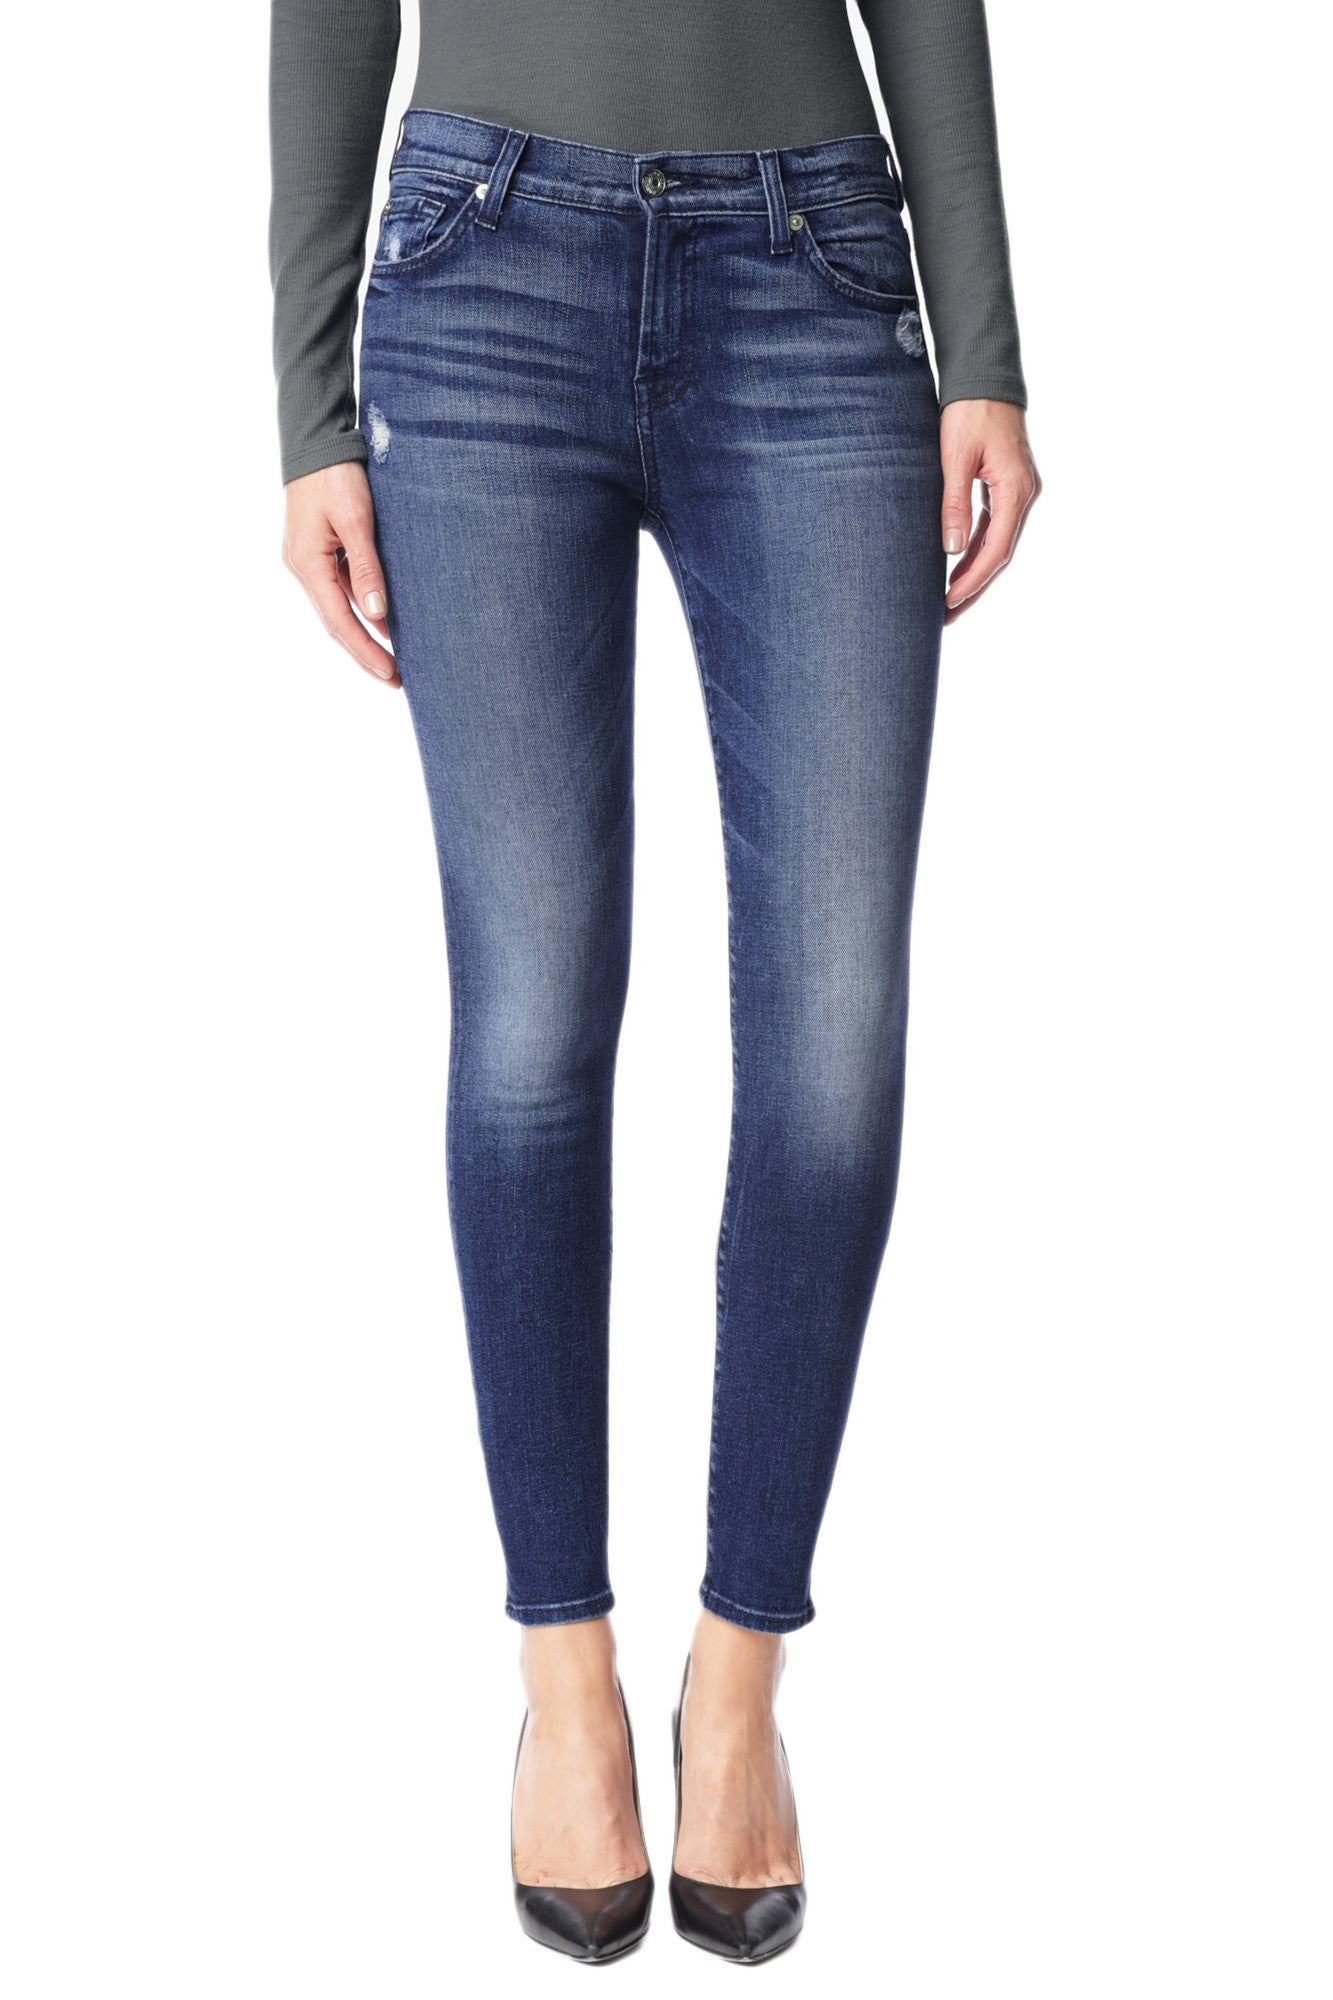 7 For All Mankind Ankle Skinny Jean with Squiggle in Lake Blue AU809744A